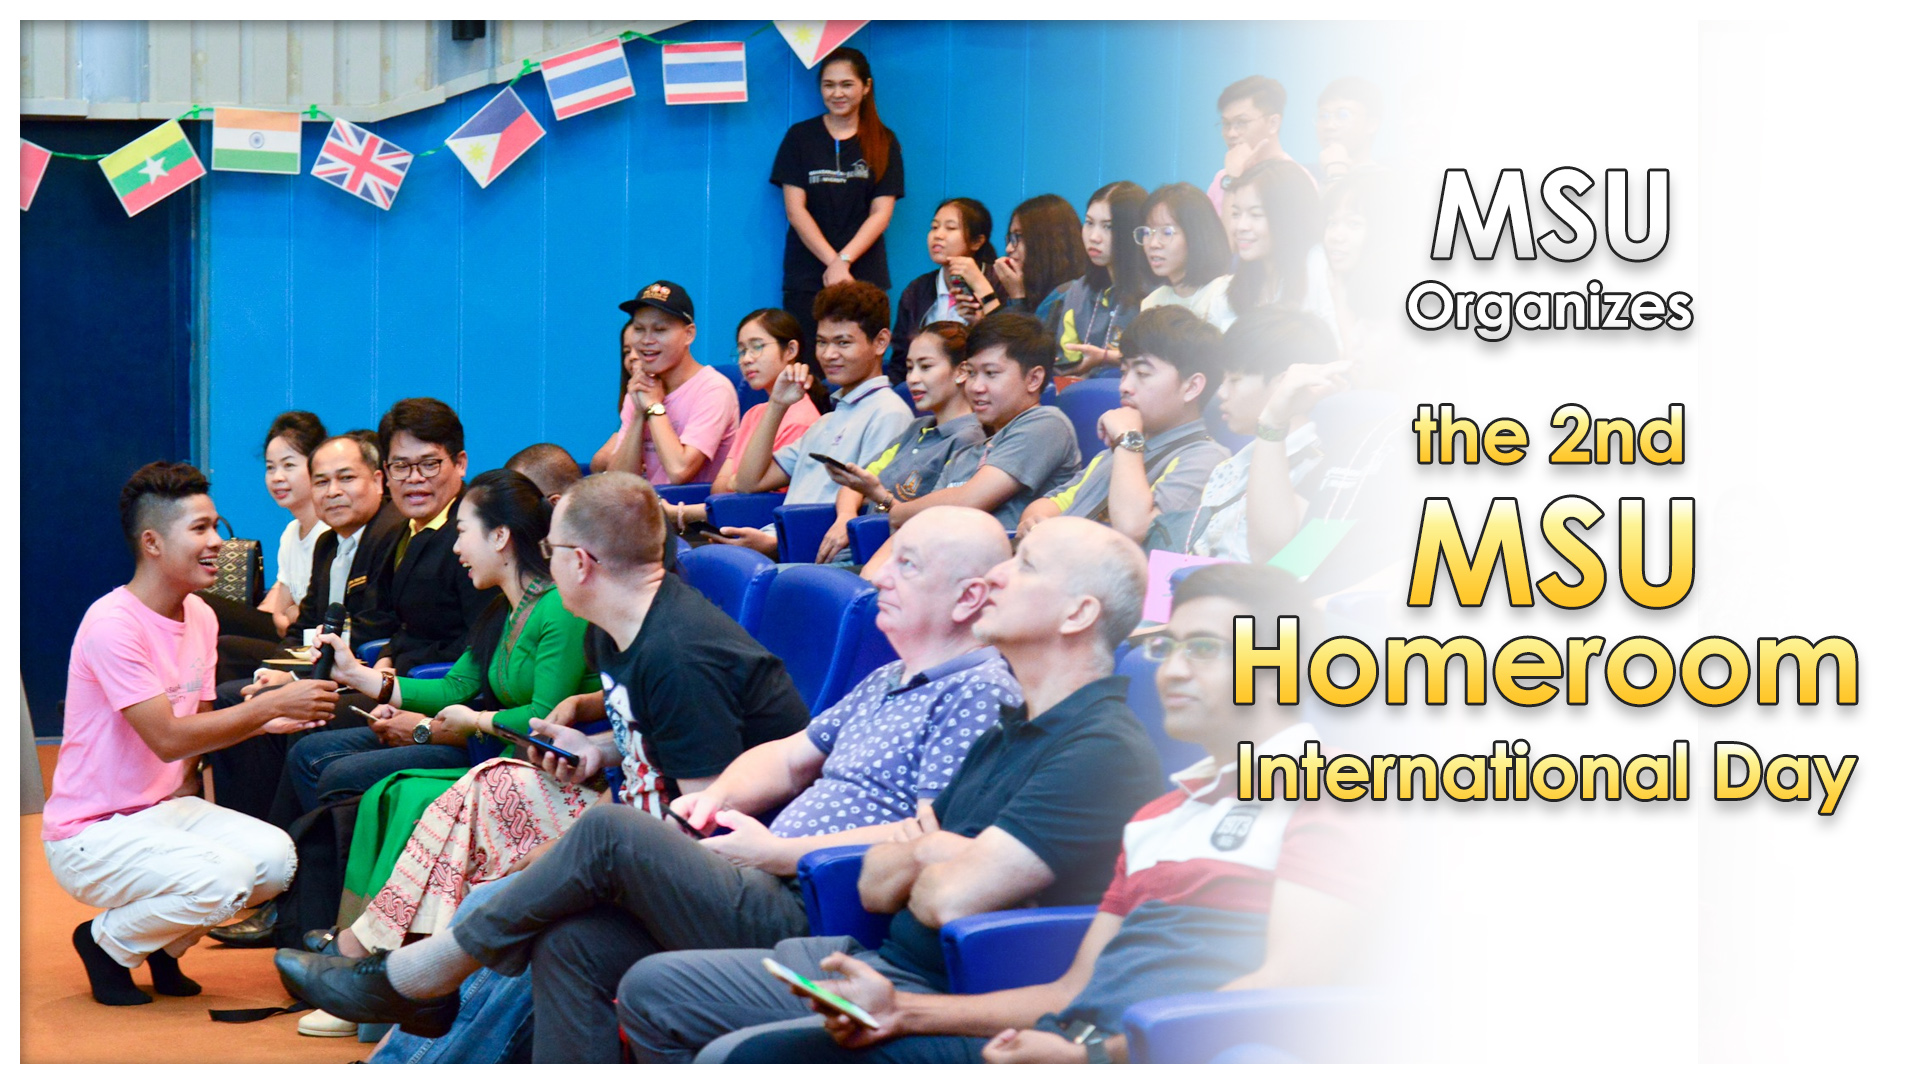 MSU Organizes the 2nd MSU Homeroom International Day